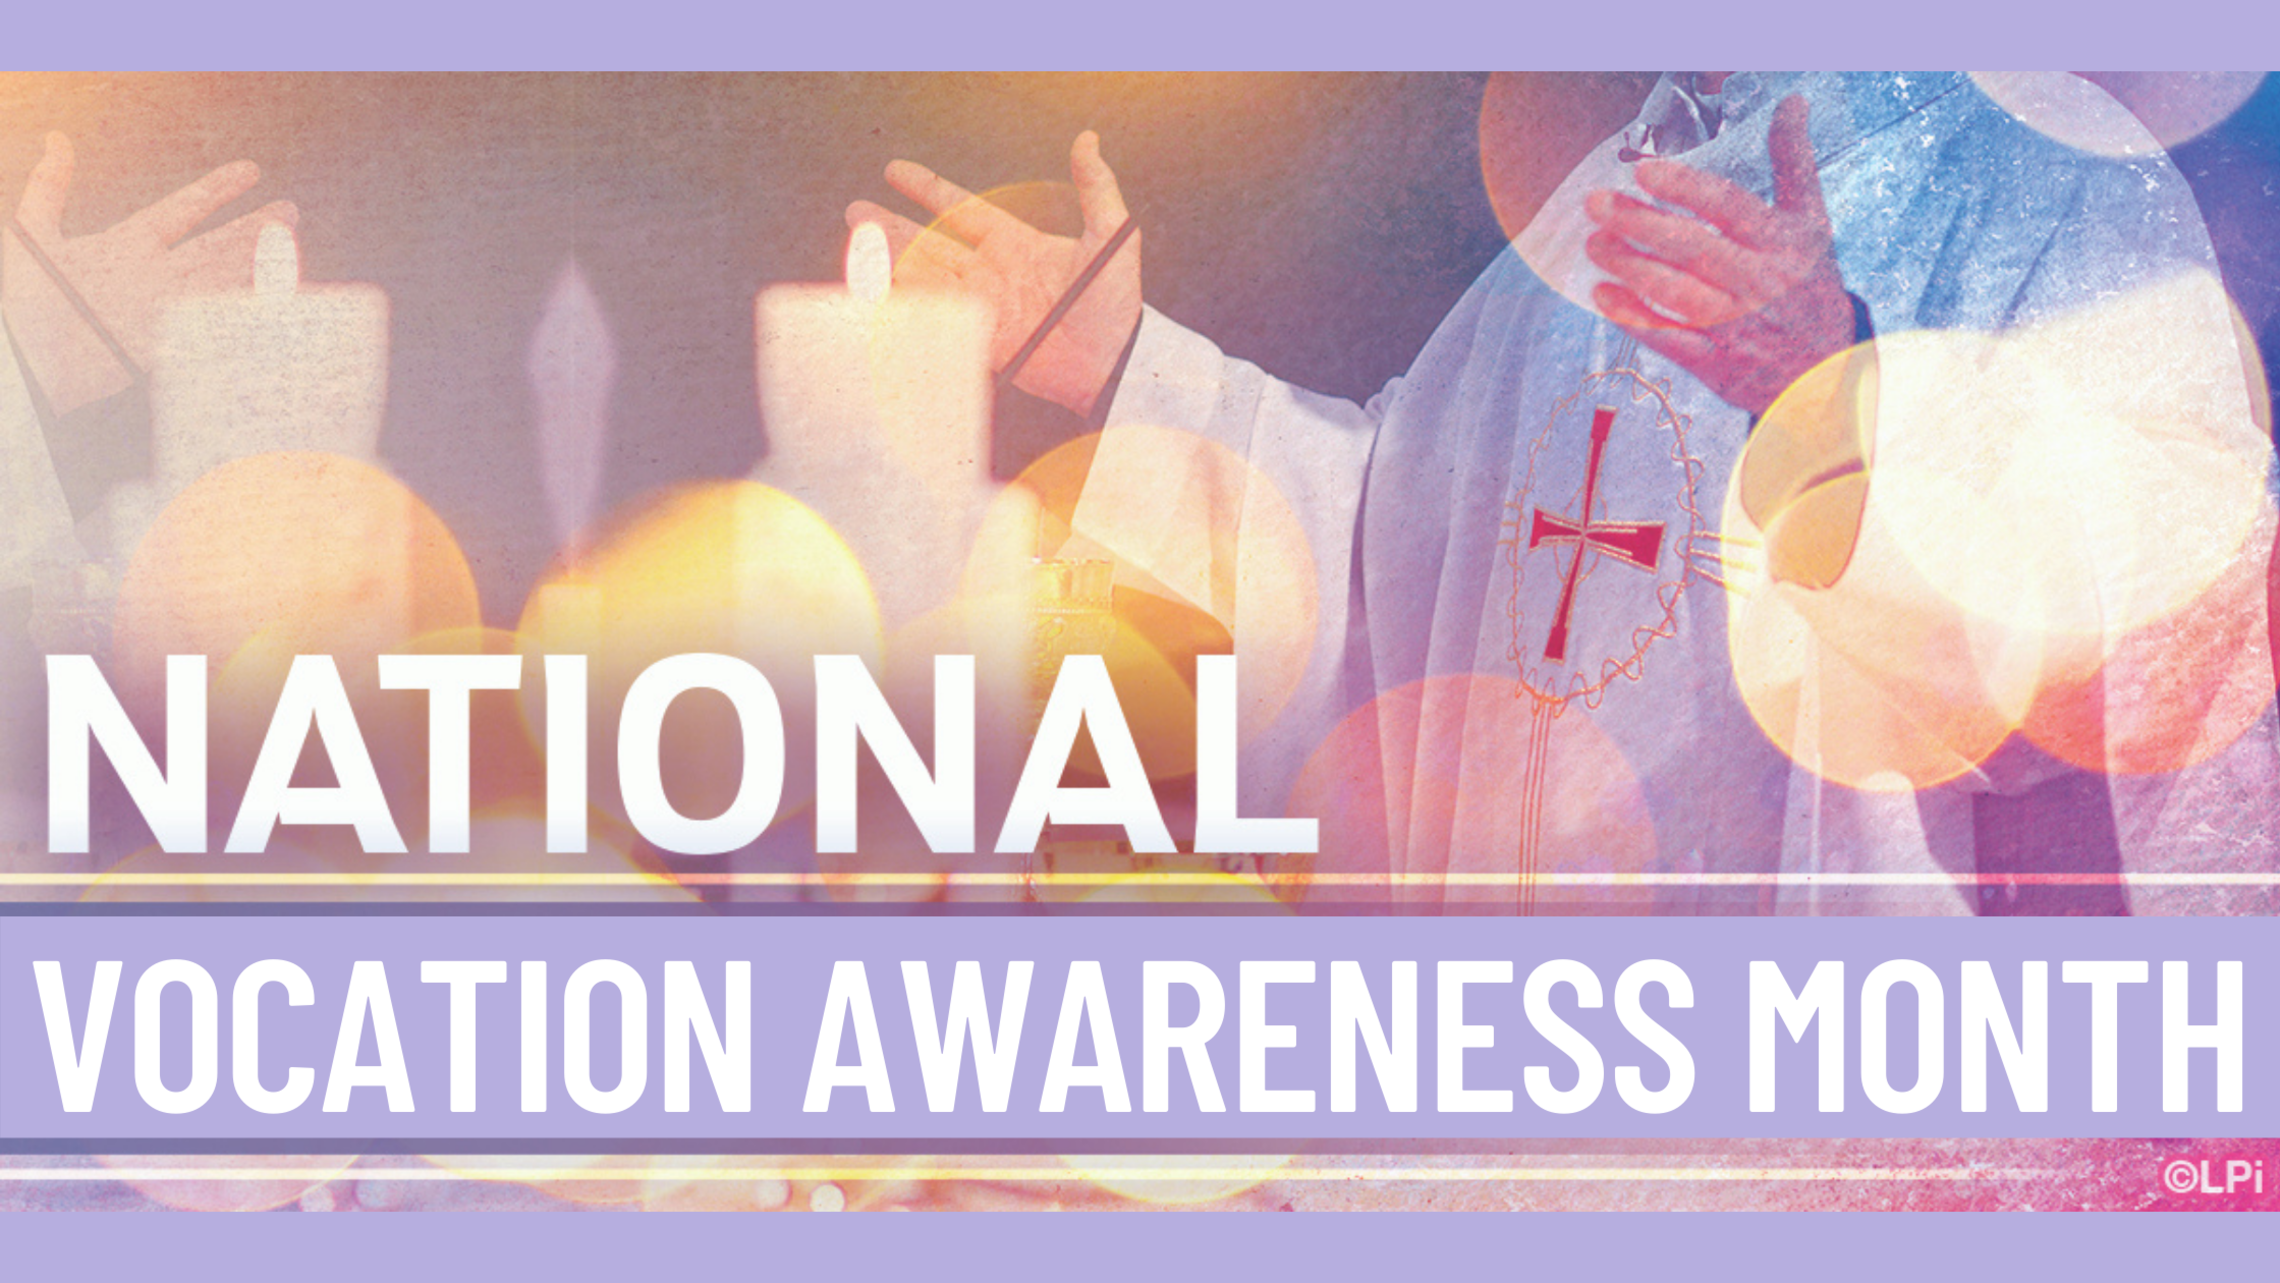 Vocation Awareness Month